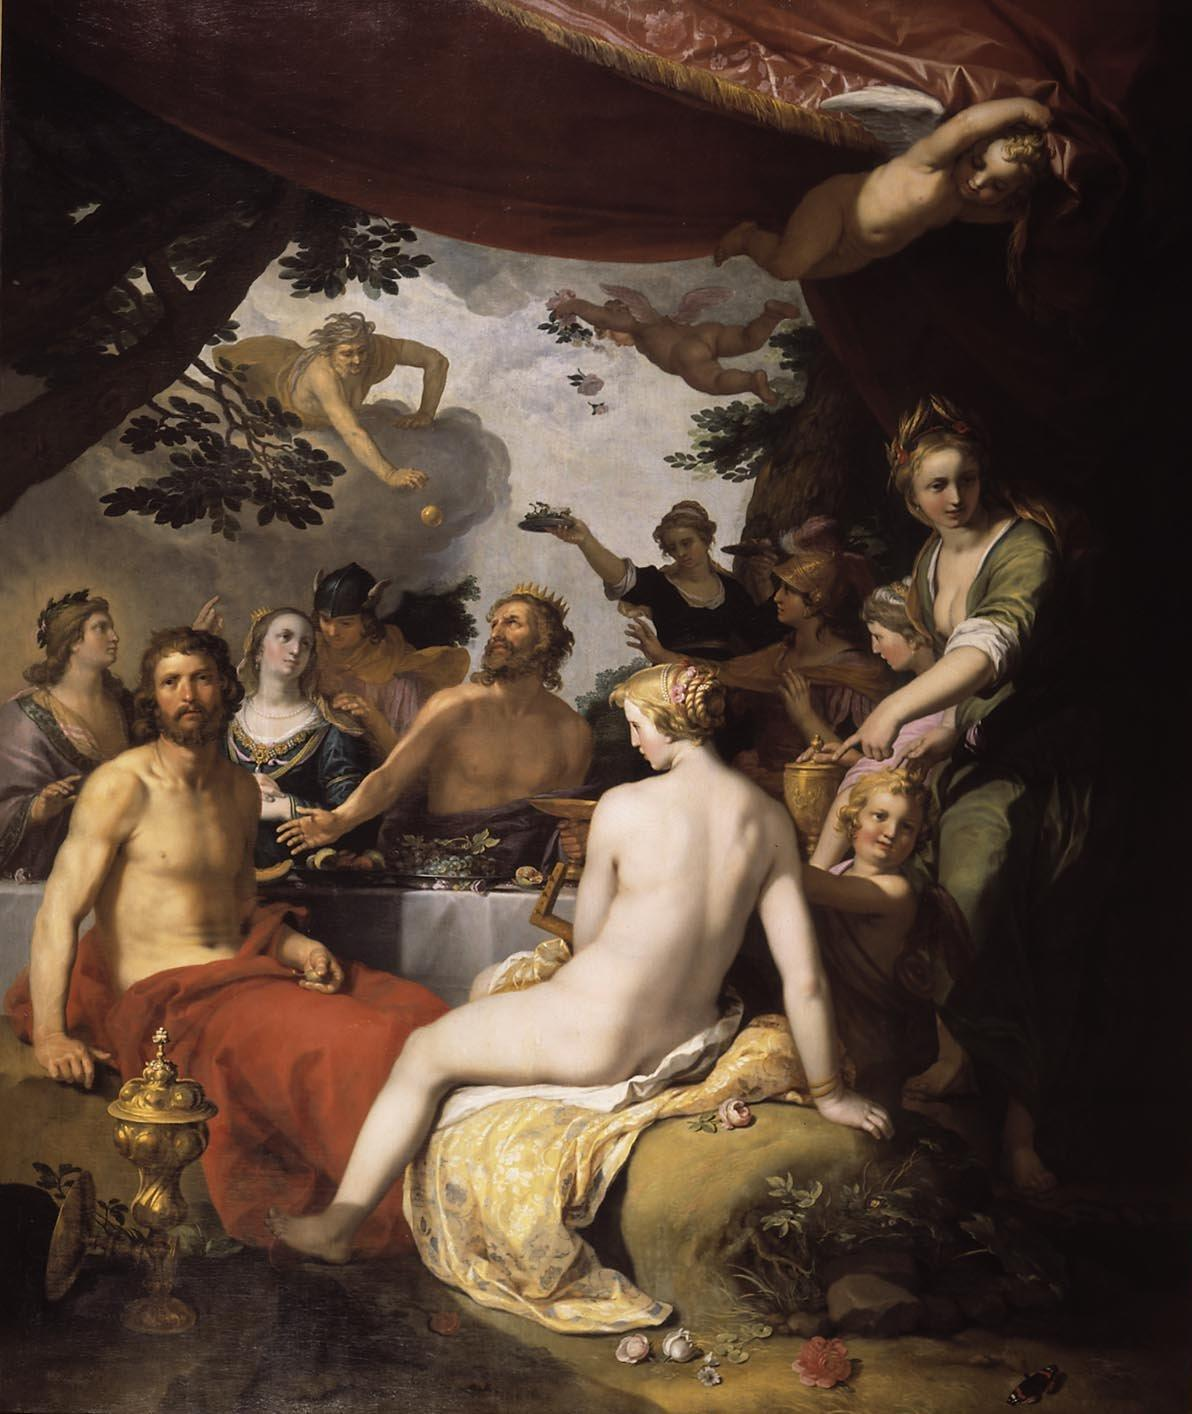 thisblueboy:  Abraham Bloemaert (Dutch, 1564-1651), Wedding of Peleus and Thetis, 1638